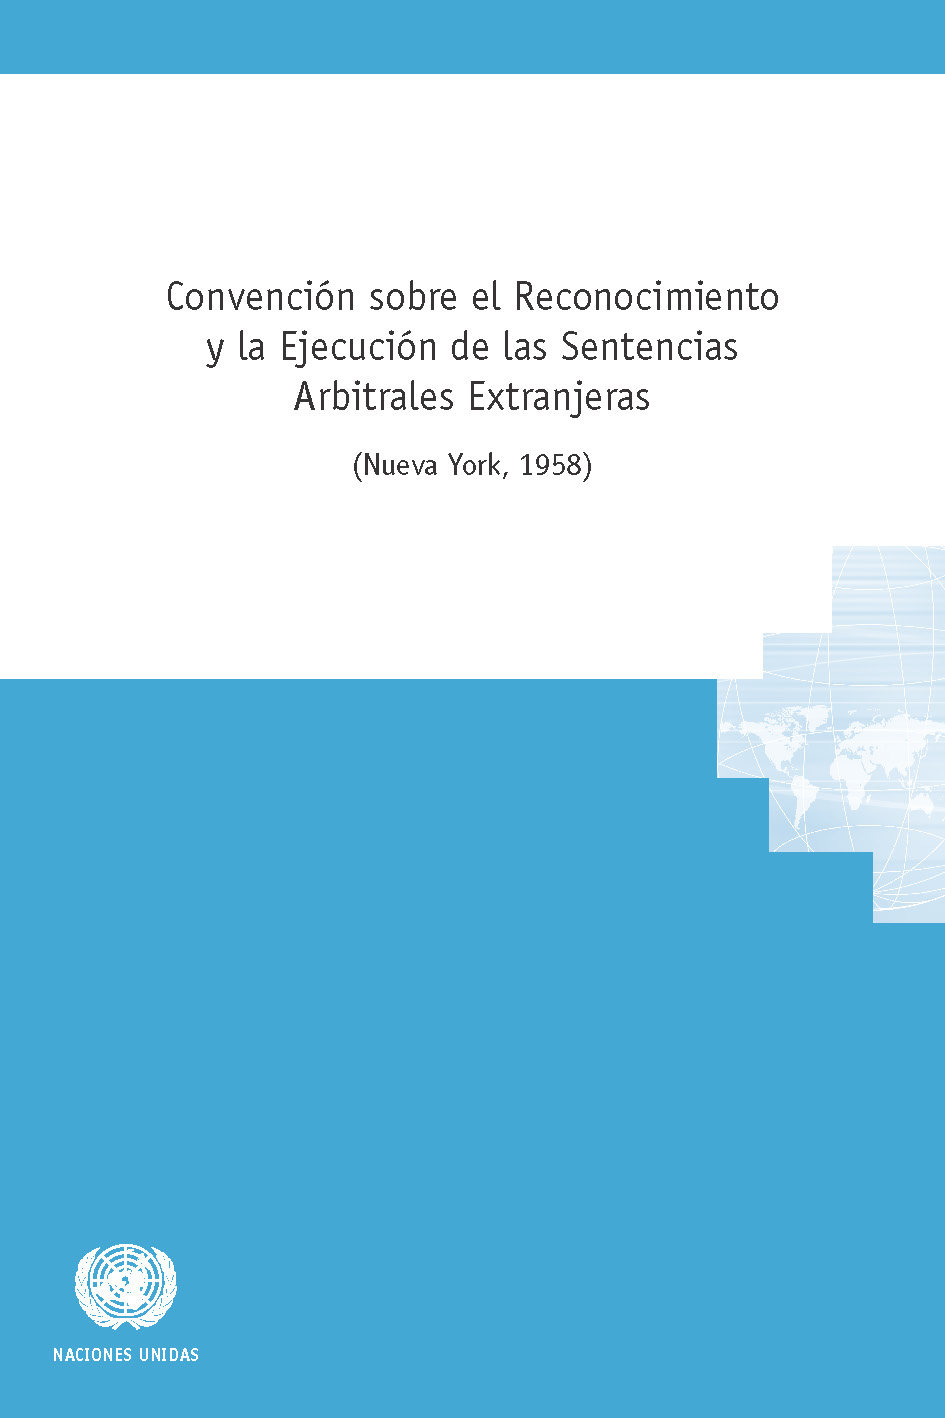 Text of the NY convention in Spanish